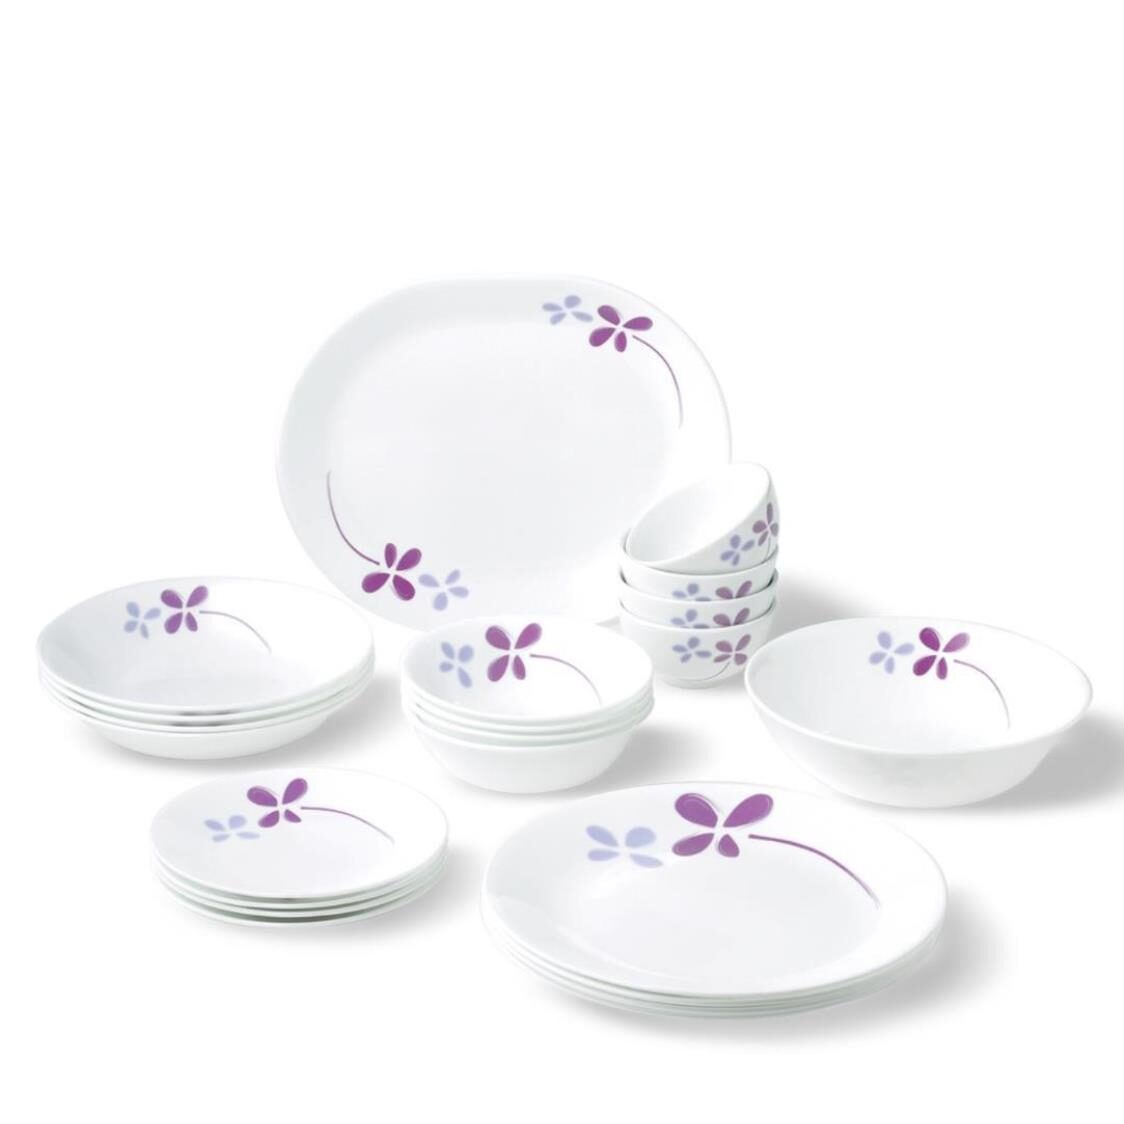 Corelle 22pc Dinner Set Warm Pansies